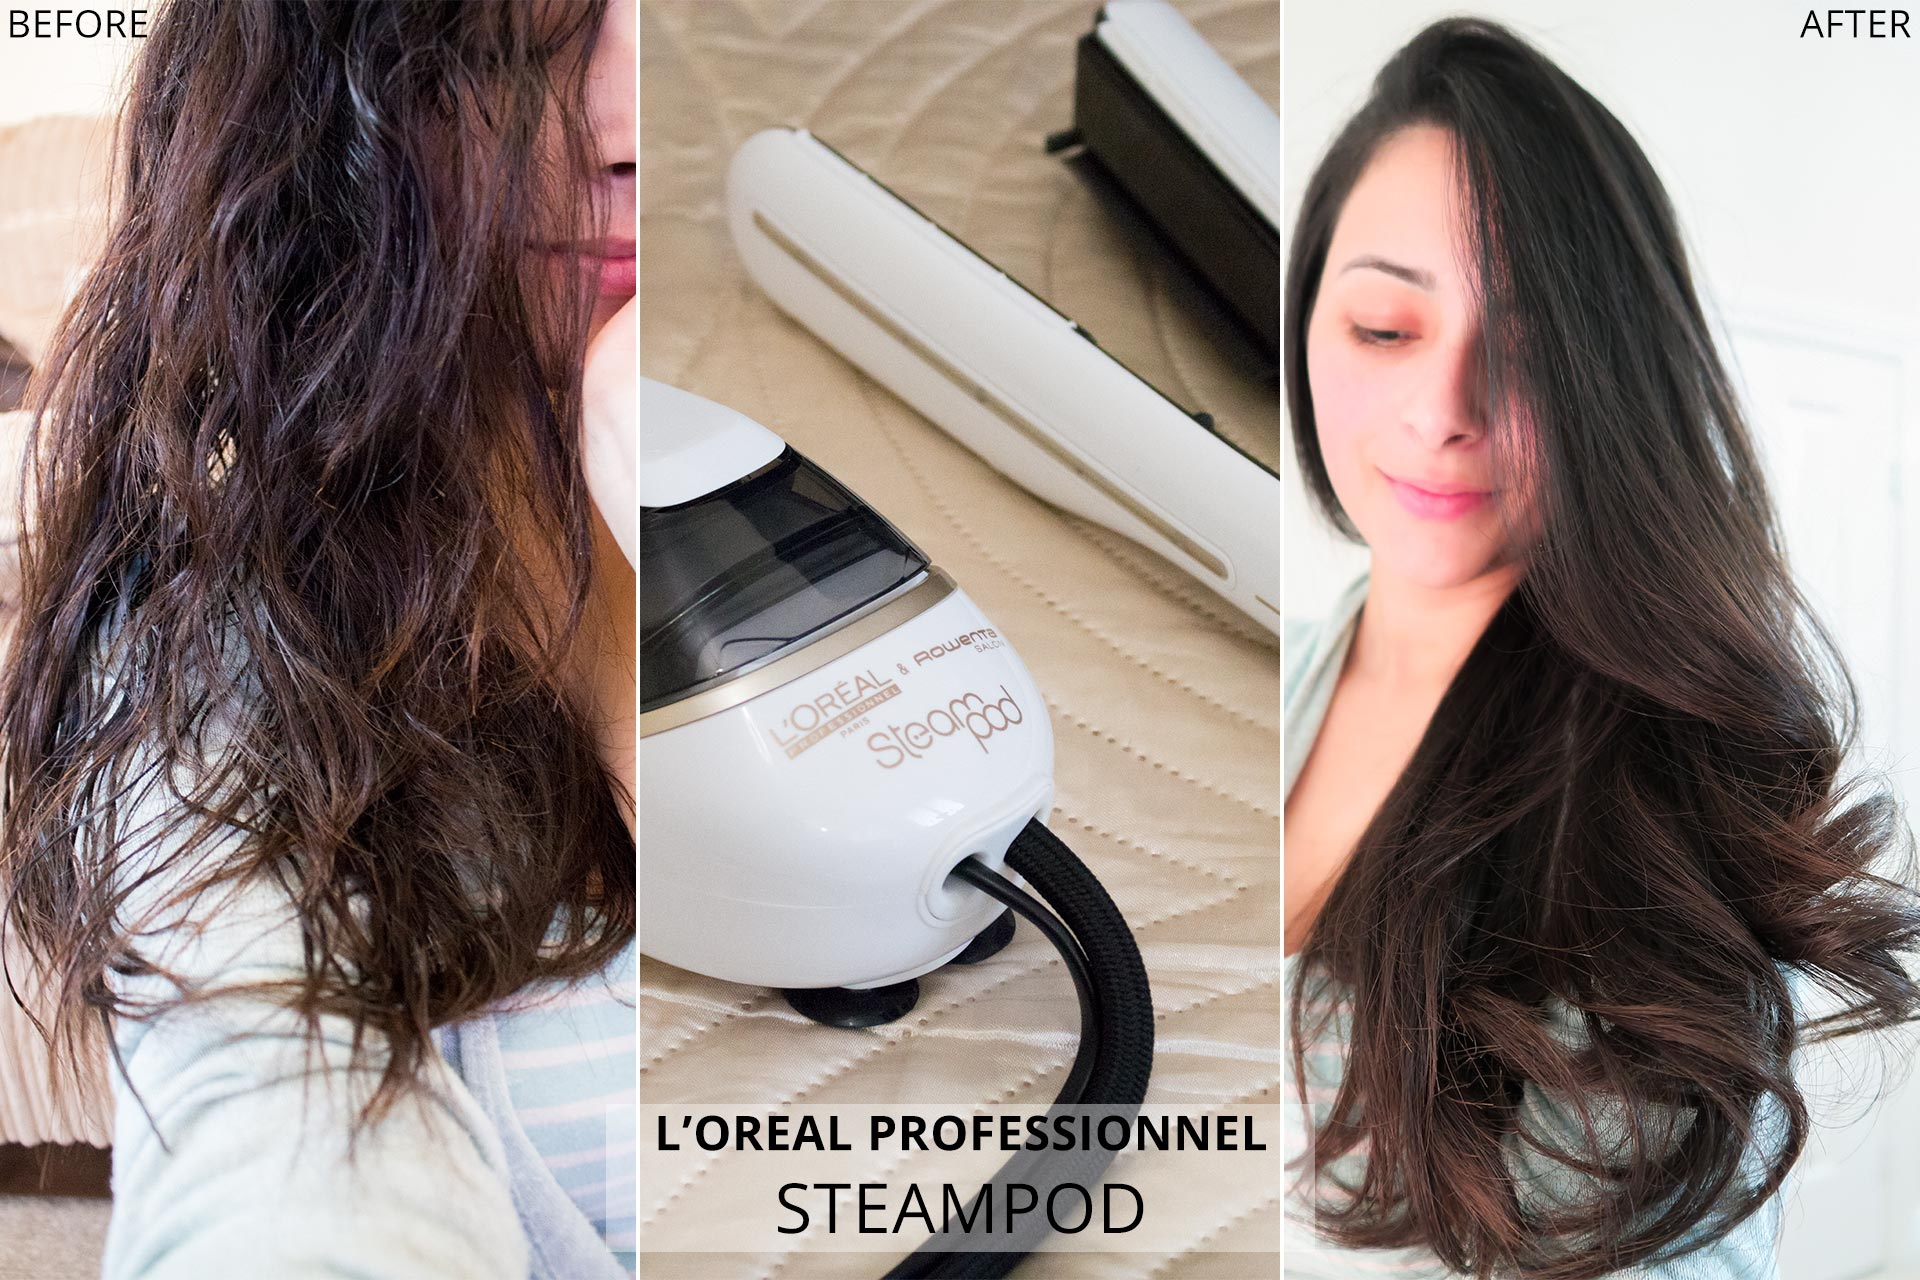 Review: L'Oreal Steampod 2.0 Straightener (Before & After) | Ysis Lorenna